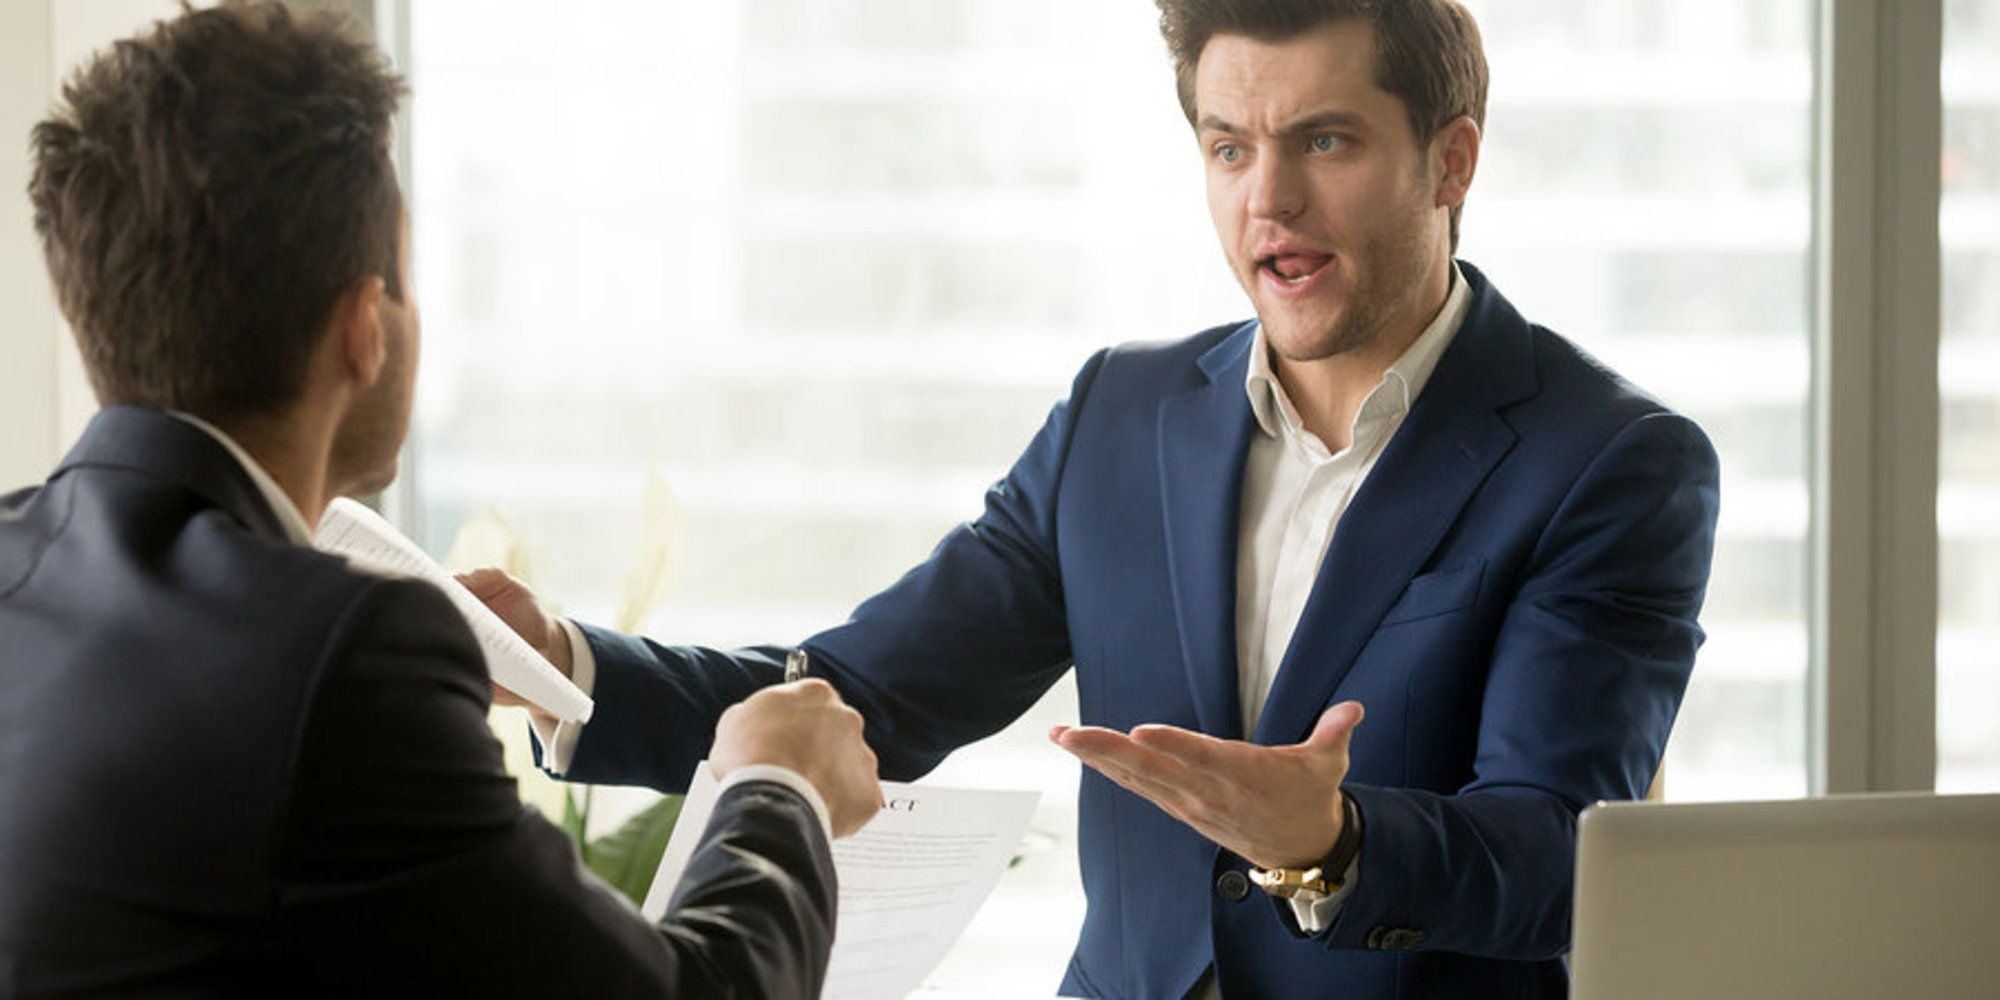 How To Handle Conflicts With CoWorkers (The Right Way!) - Travel insurance, Resentments, How to become, Smart people, Going to work, Bridal show - Navigating disagreements with coworkers can go a long way to saving or strengthening relationships, and improving one's professional reputation